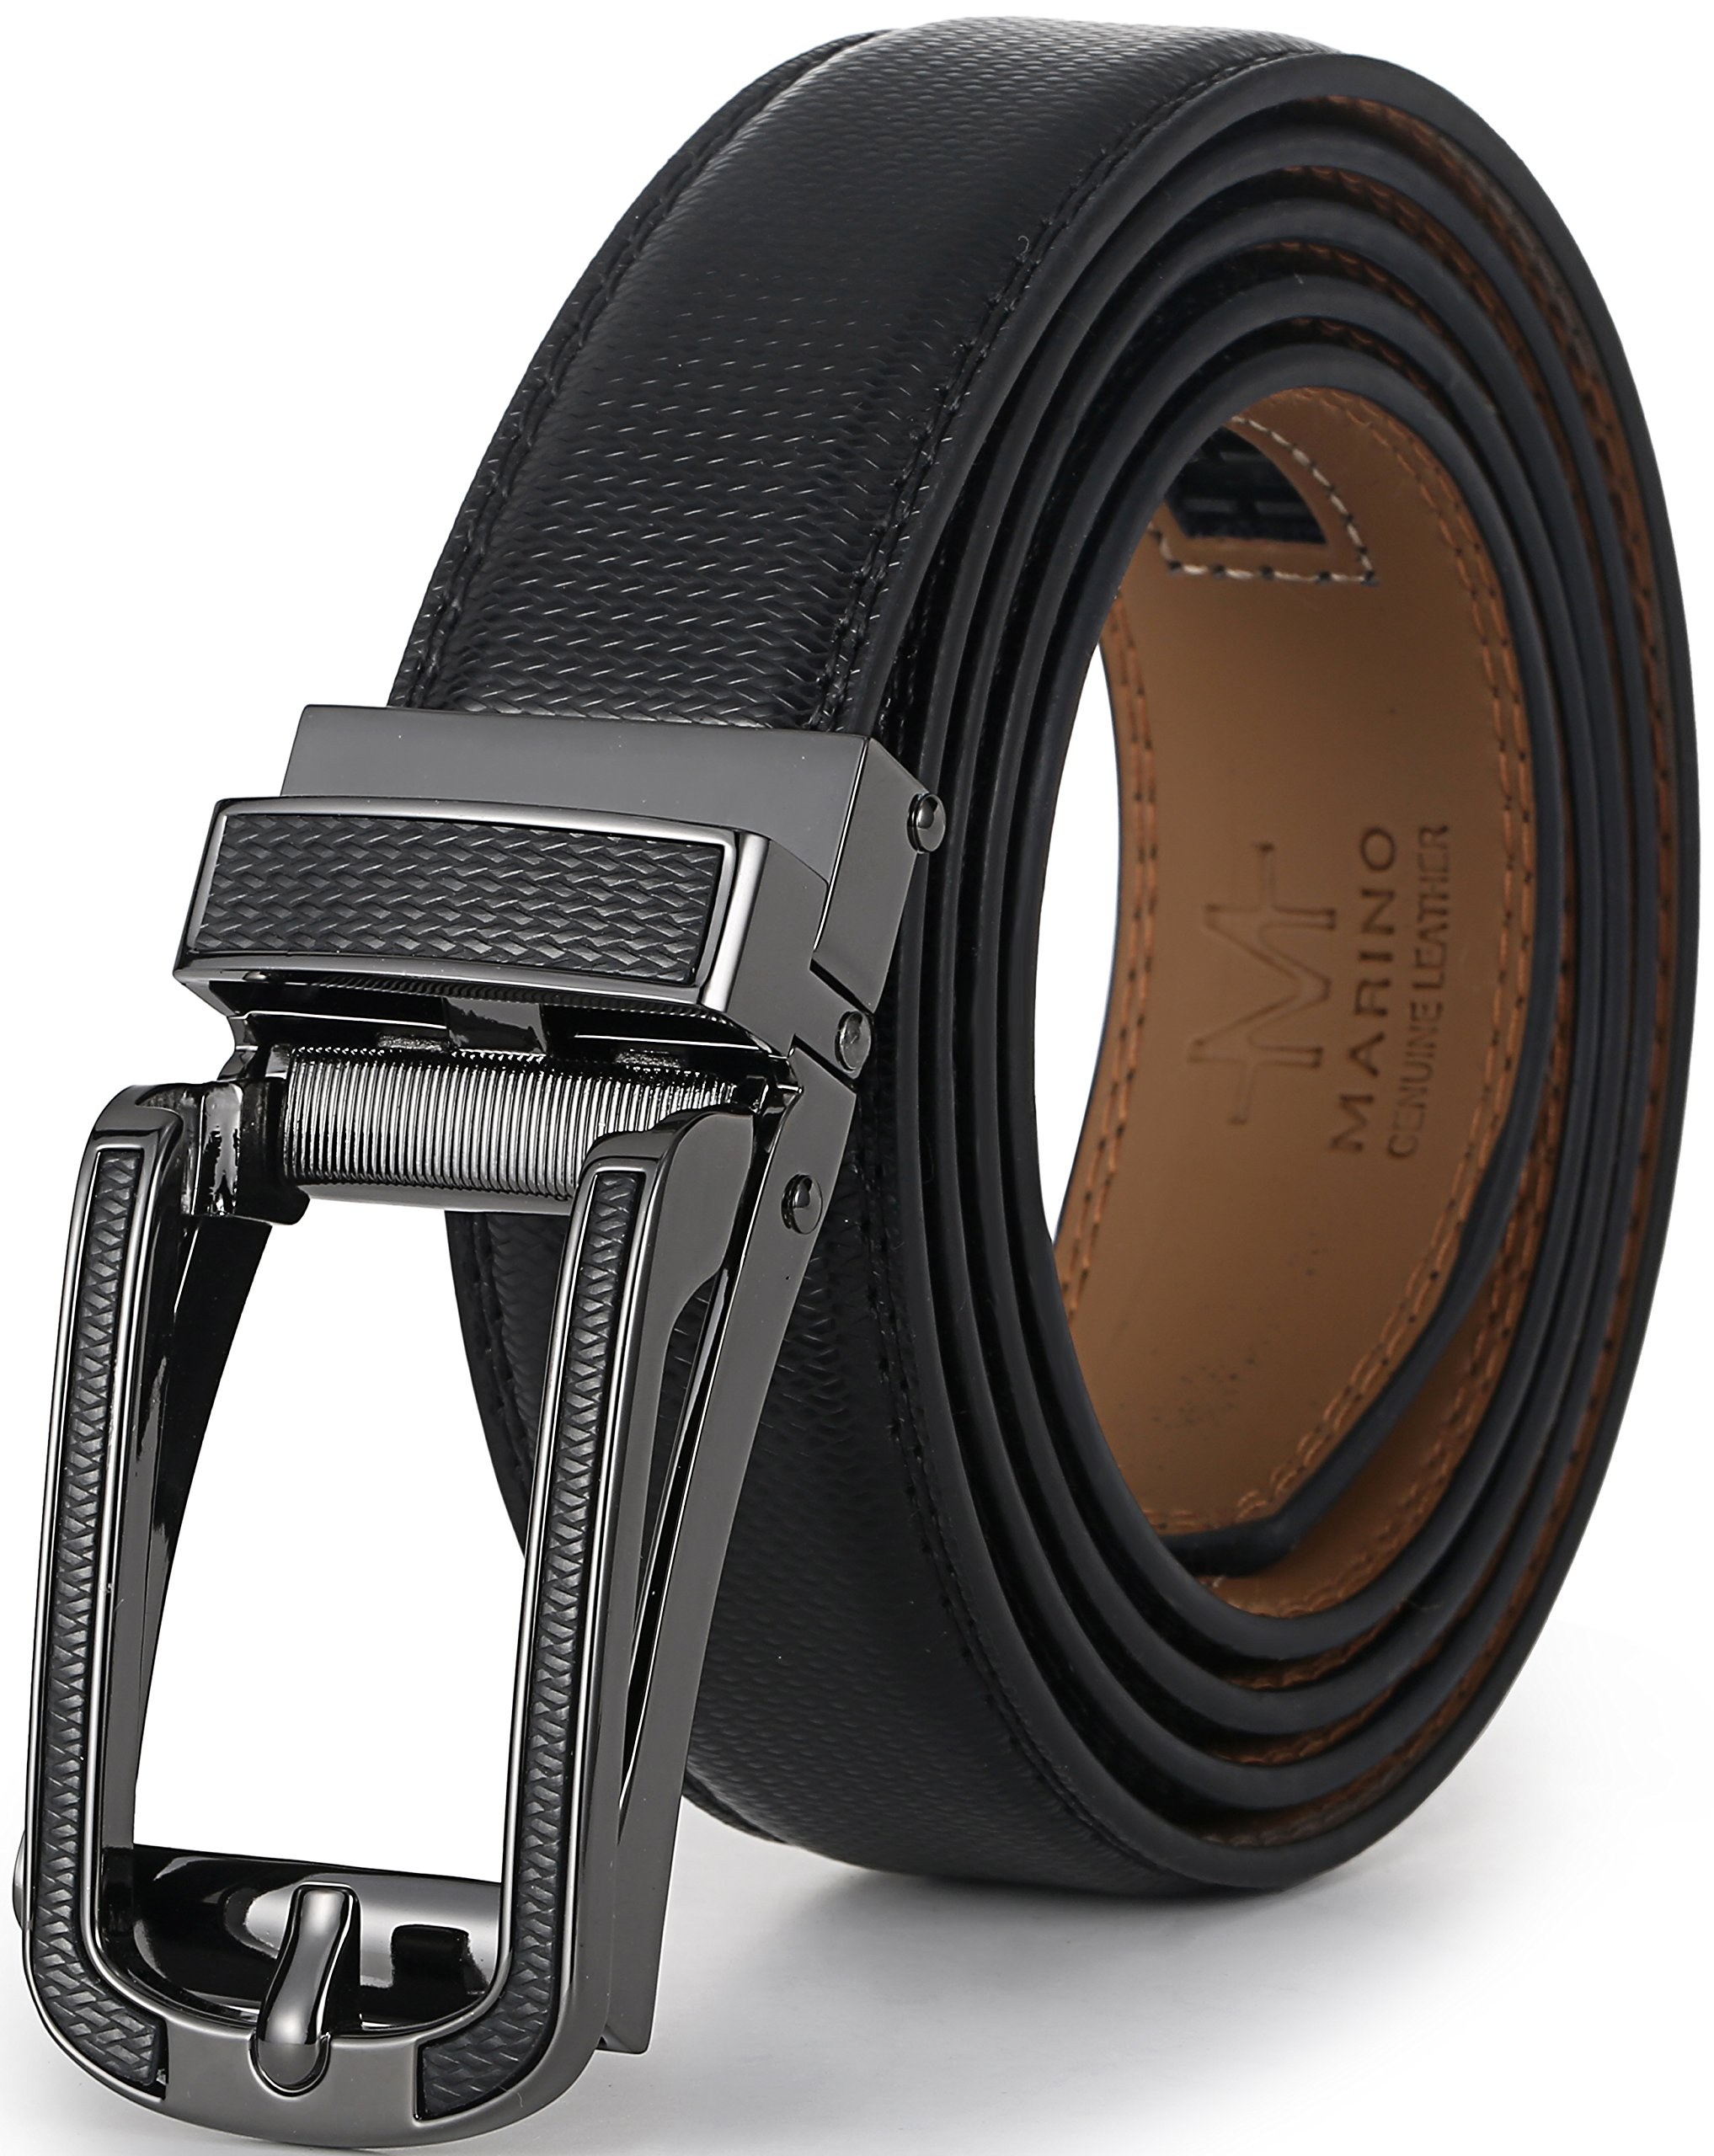 Marino Avenue Mens Genuine Leather Ratchet Dress Belt with Open Linxx Leather Buckle, Enclosed in an Elegant Gift Box - Black - Style 138 - Custom Up to 44'' Waist